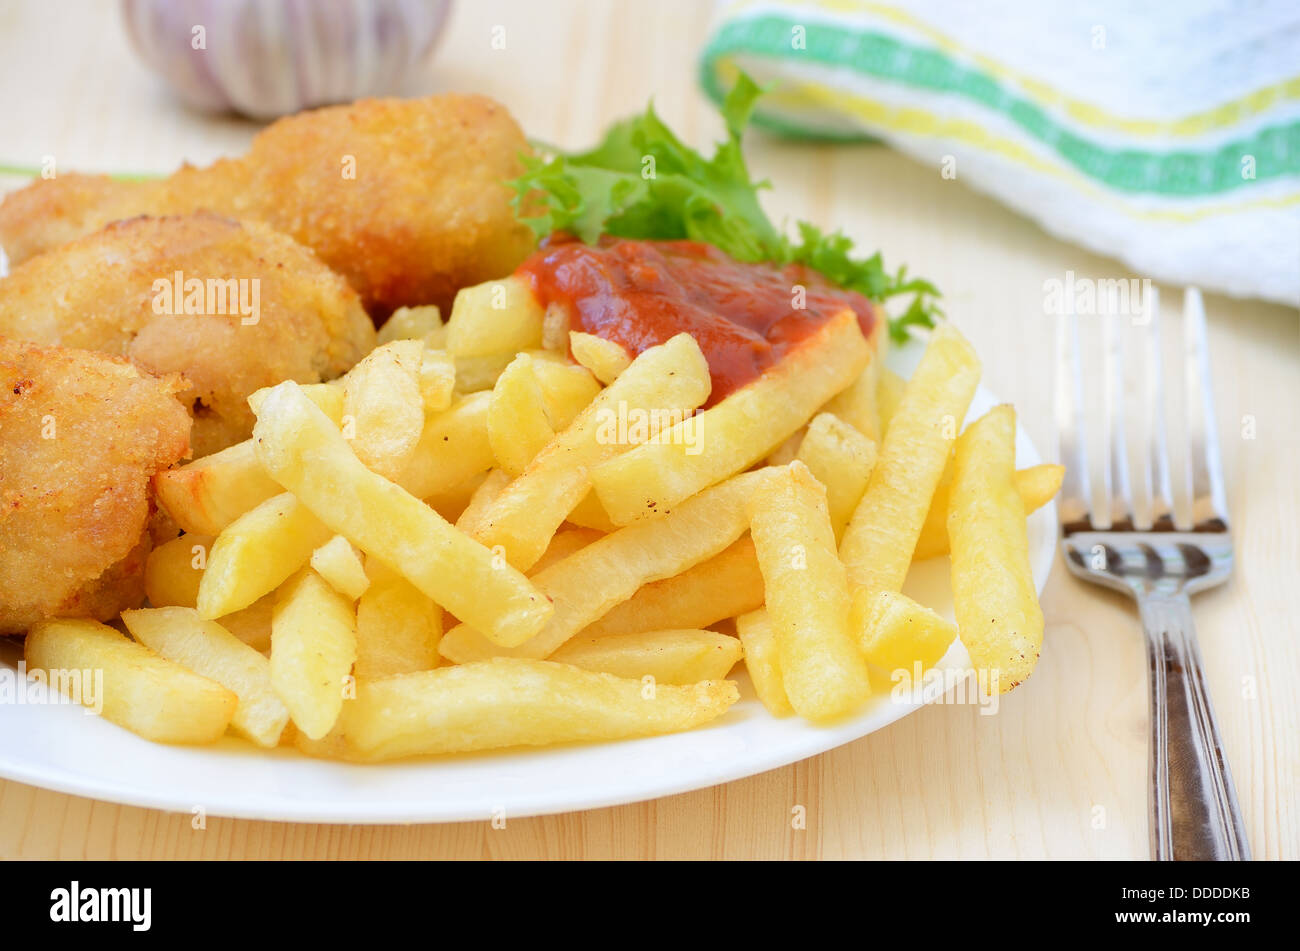 Fried chicken with french fries on wooden table - Stock Image